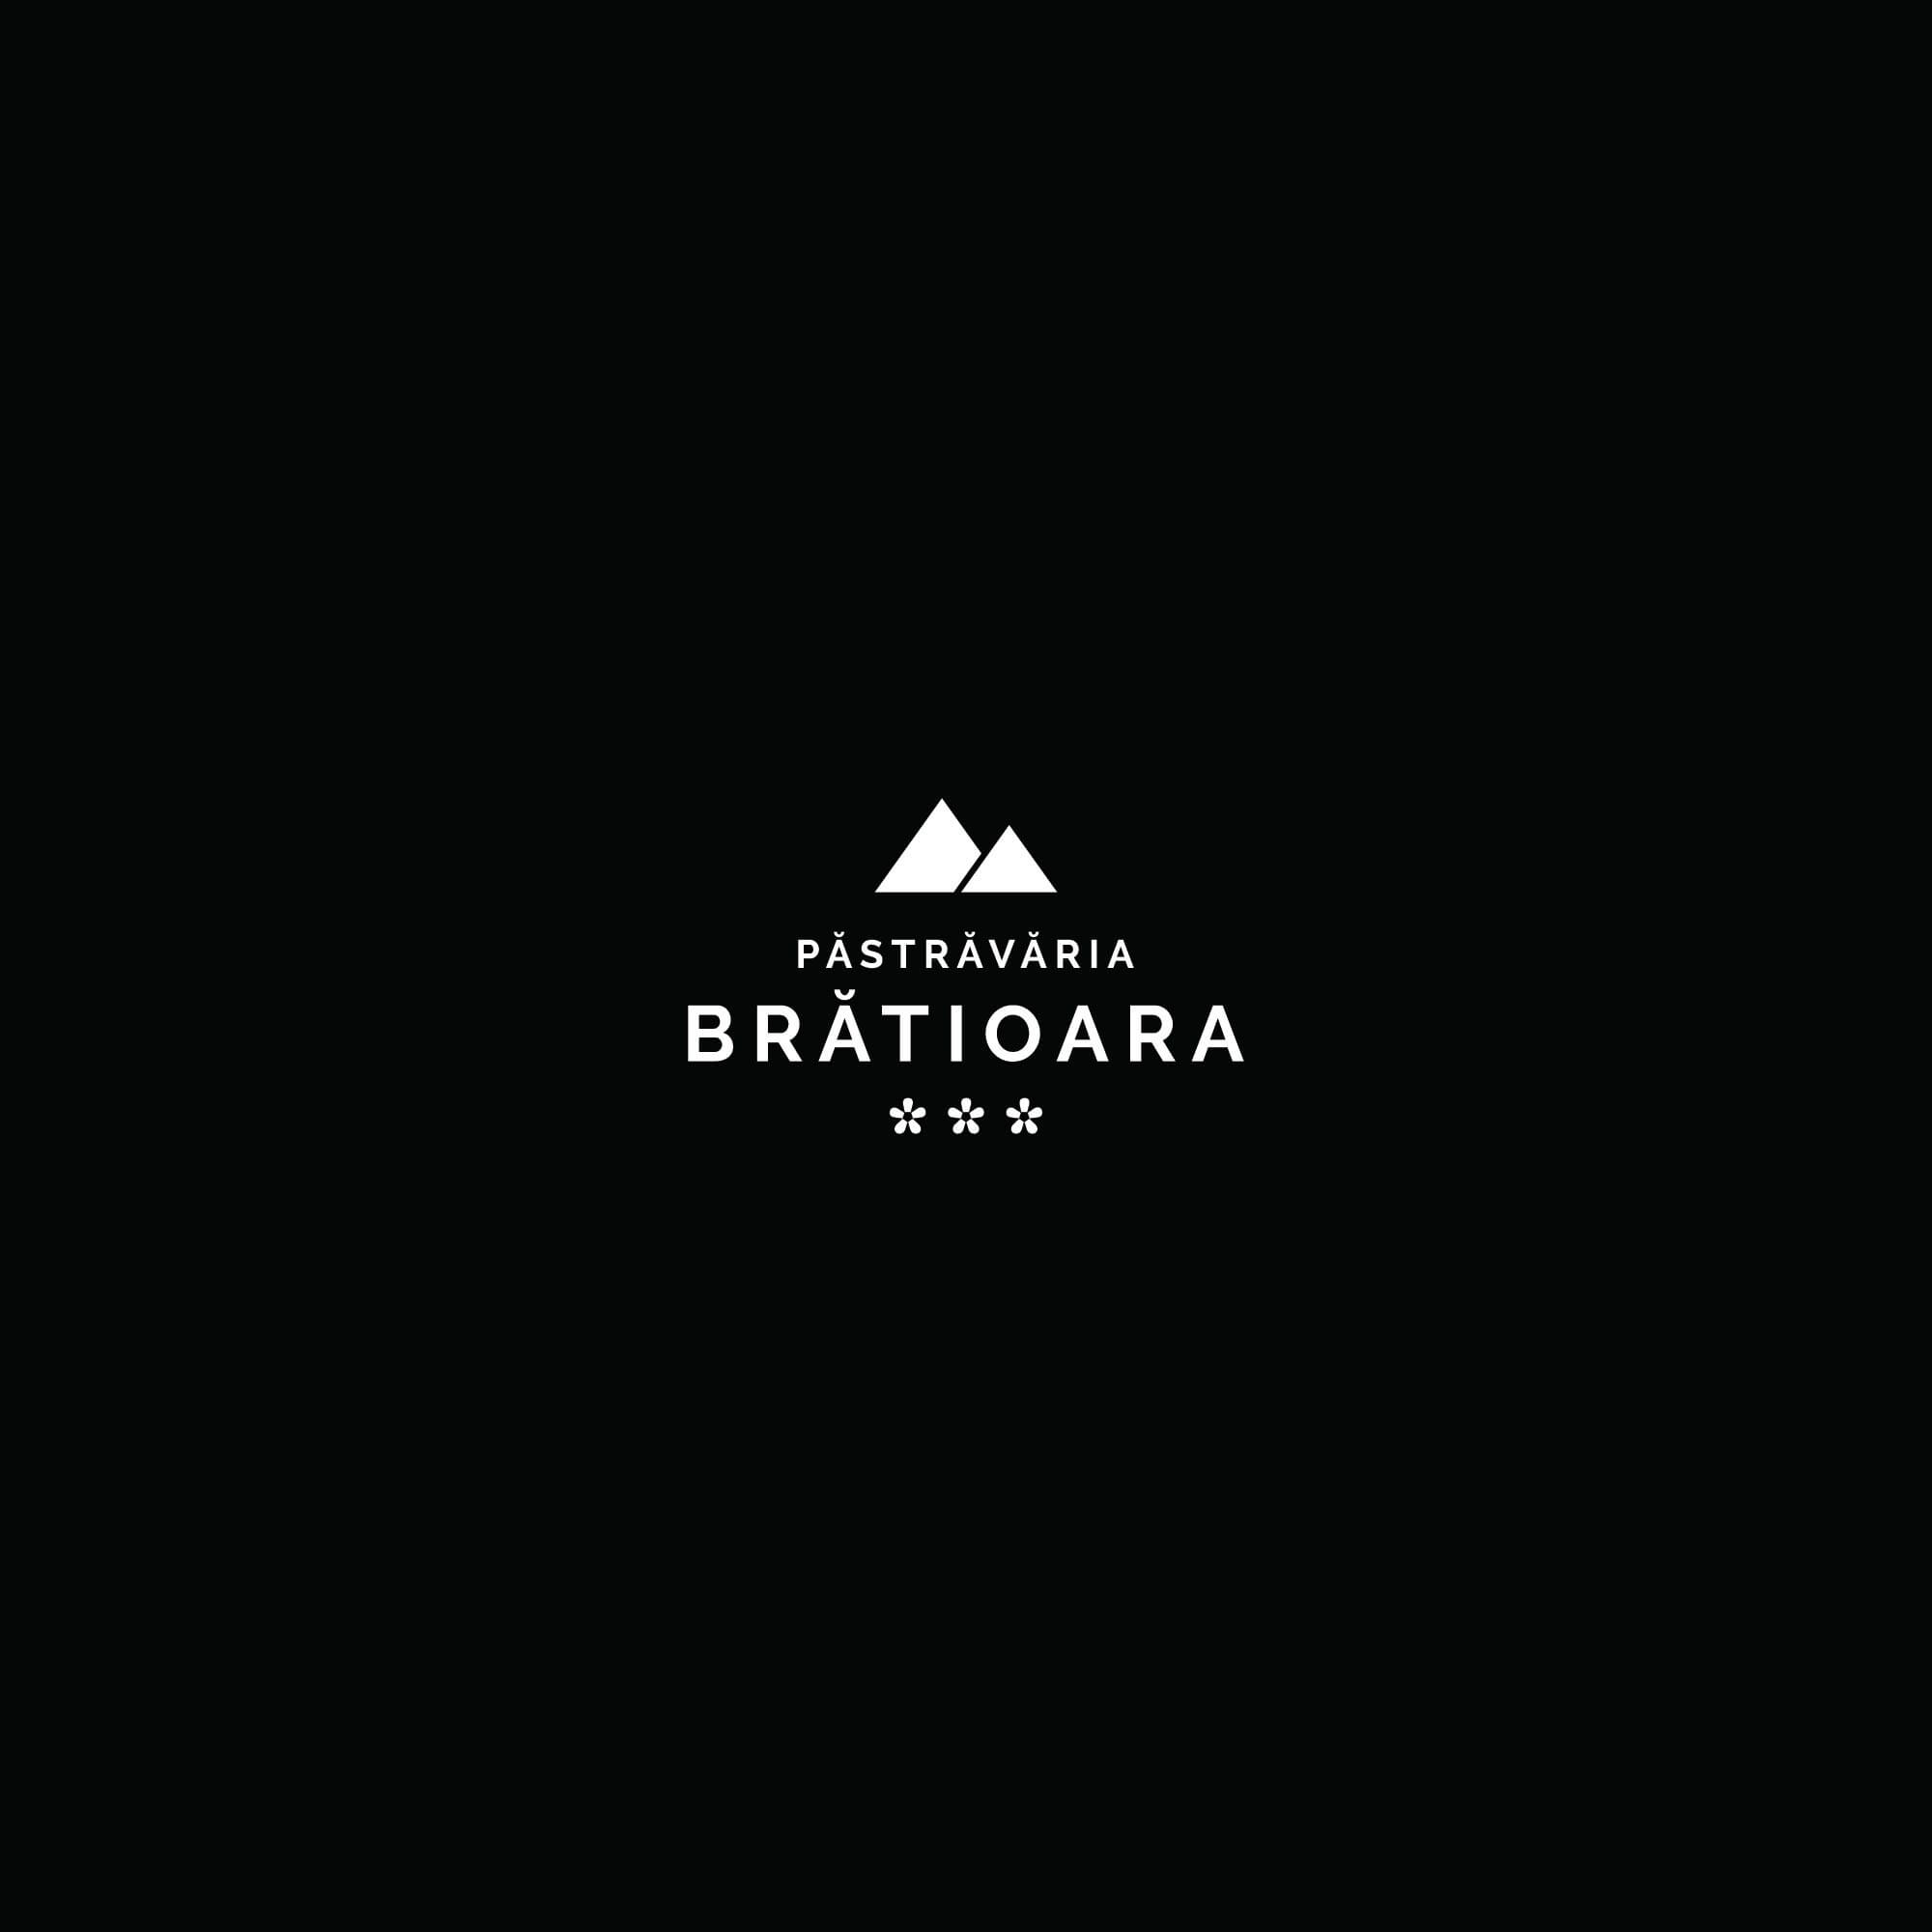 Logo Pastravaria Bratioara black background, trout farm in the mountains, a relaxing place with amazing scenery.